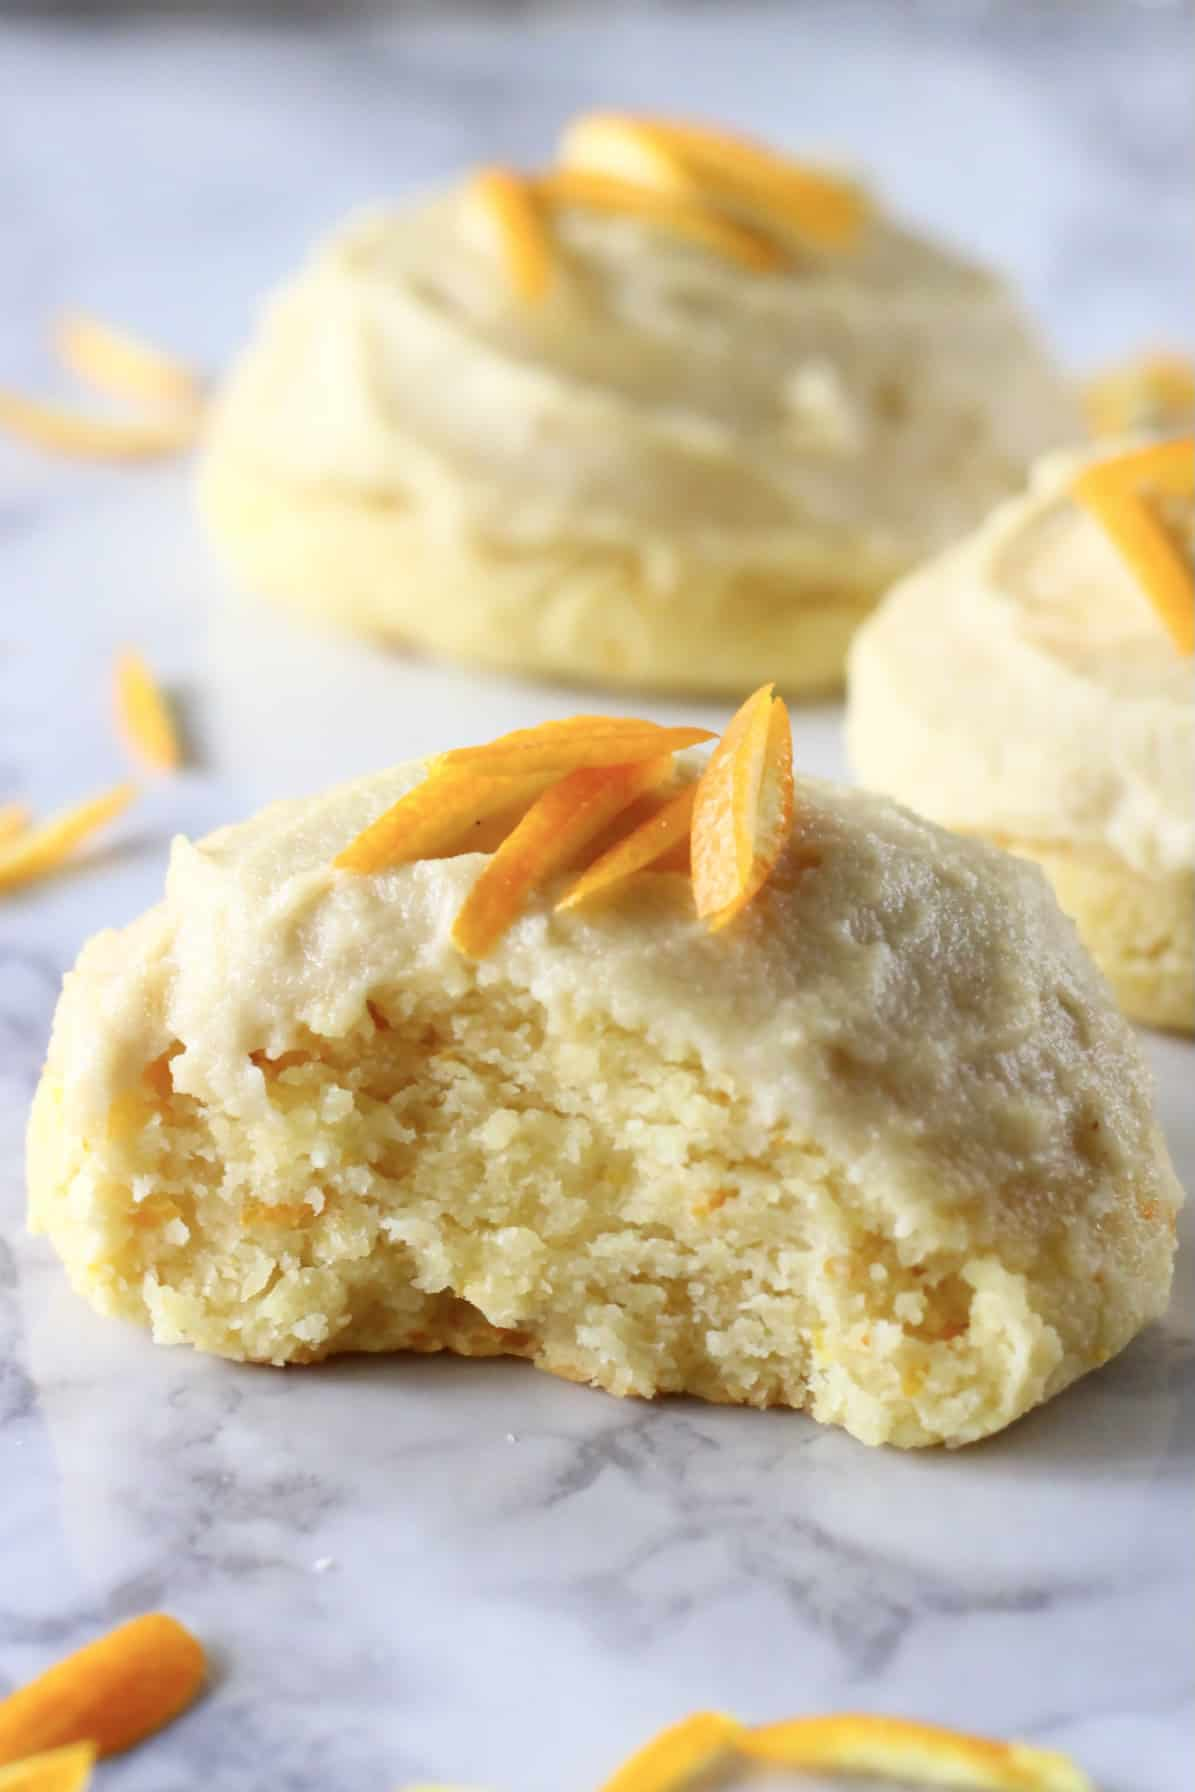 Three orange cookies with frosting and orange zest with a bite taken out of one